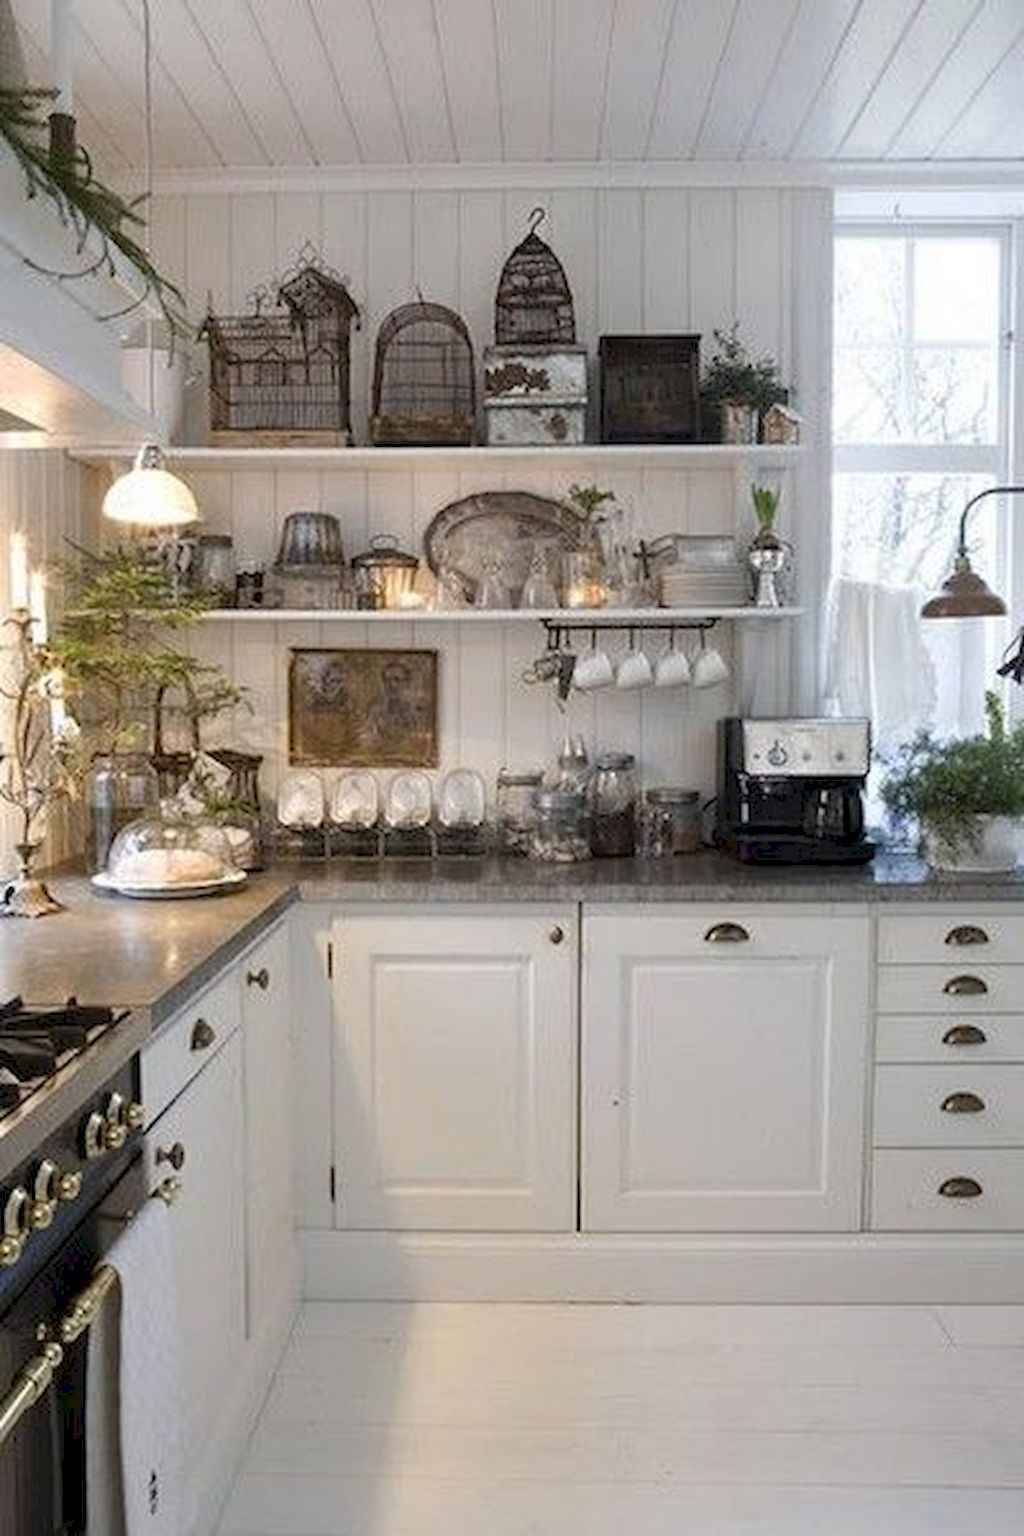 Incredible french country kitchen design ideas (8)